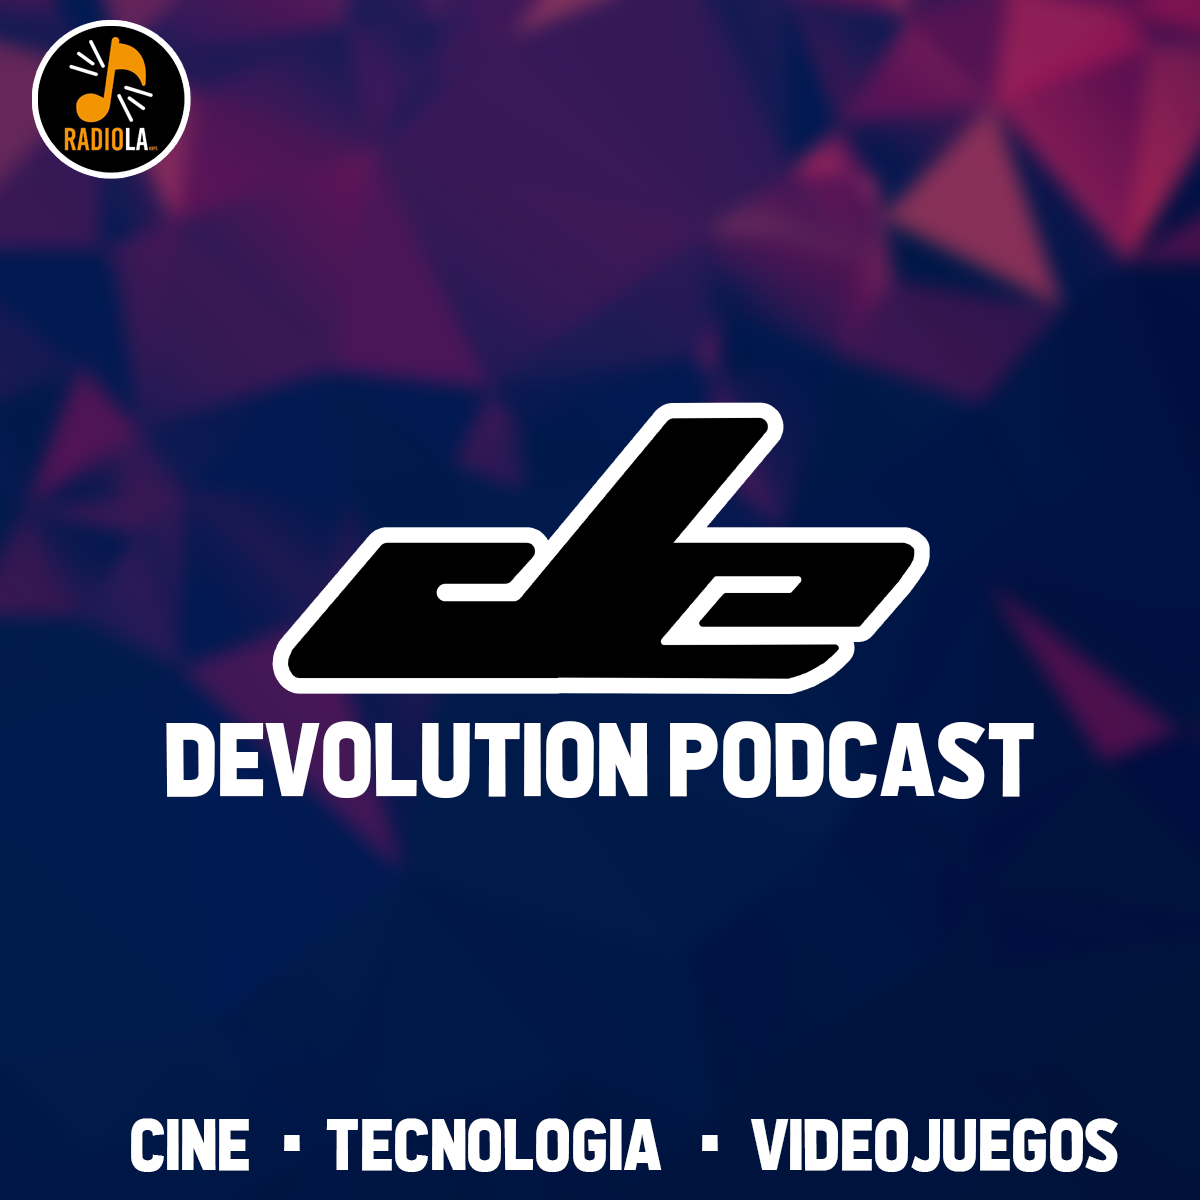 Devolution Podcast